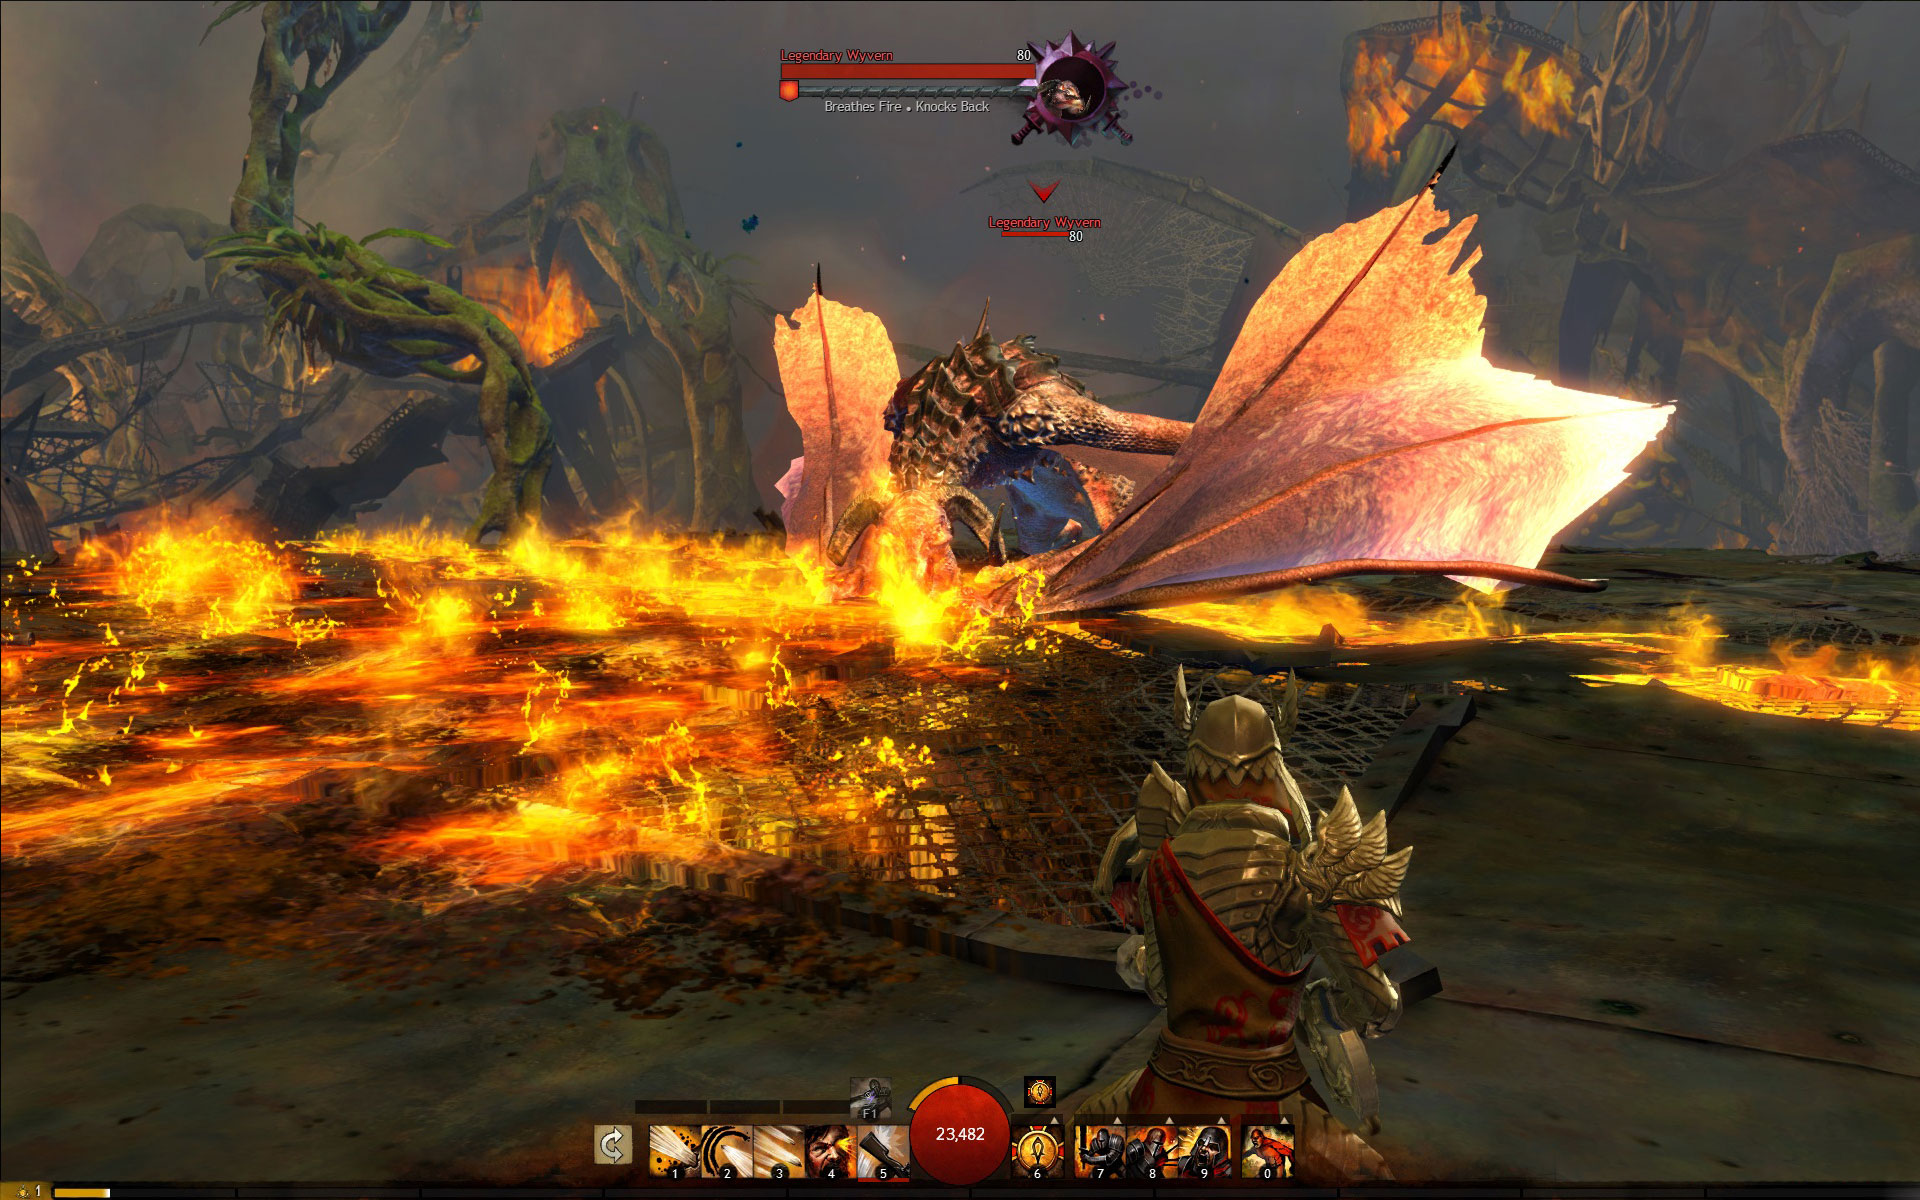 Meet the Wyvern in Guild Wars 2: Heart of Thorns